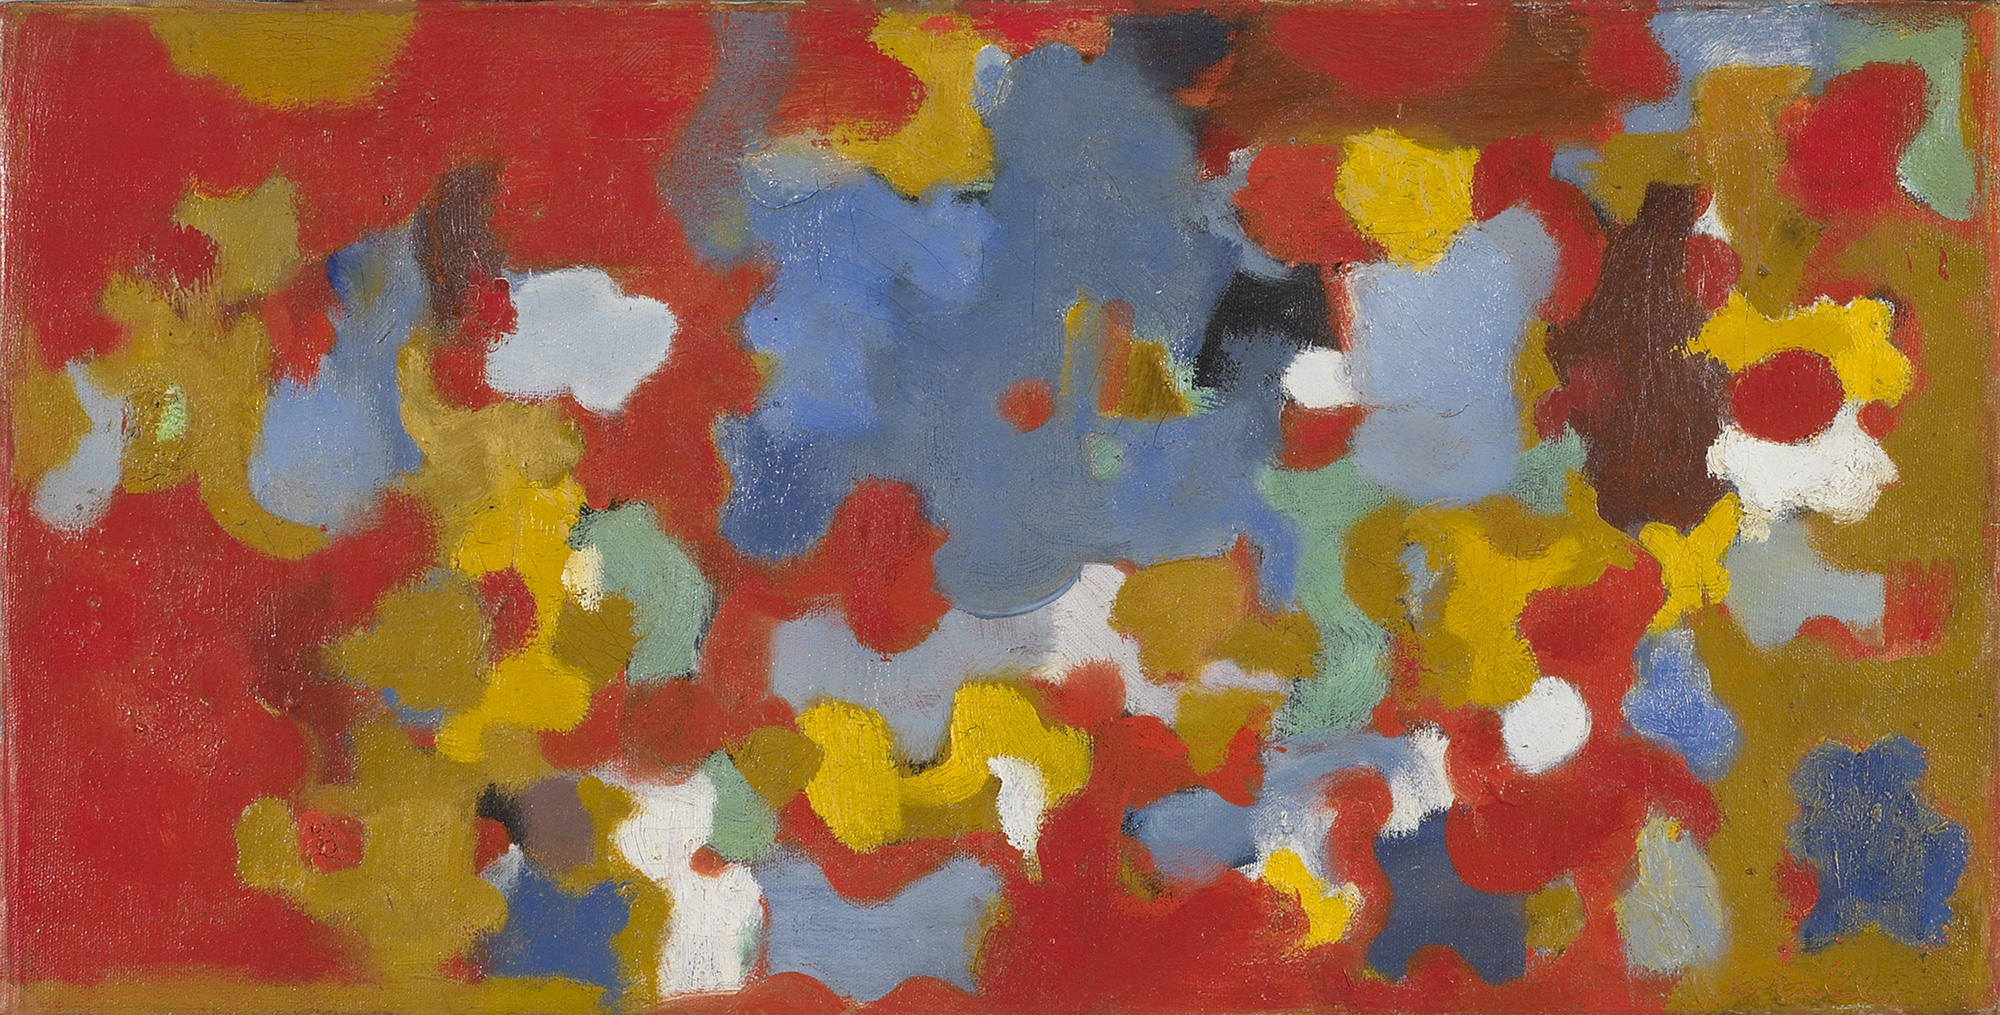 Untitled, 1953  , oil on canvas, 12 x 24 inches